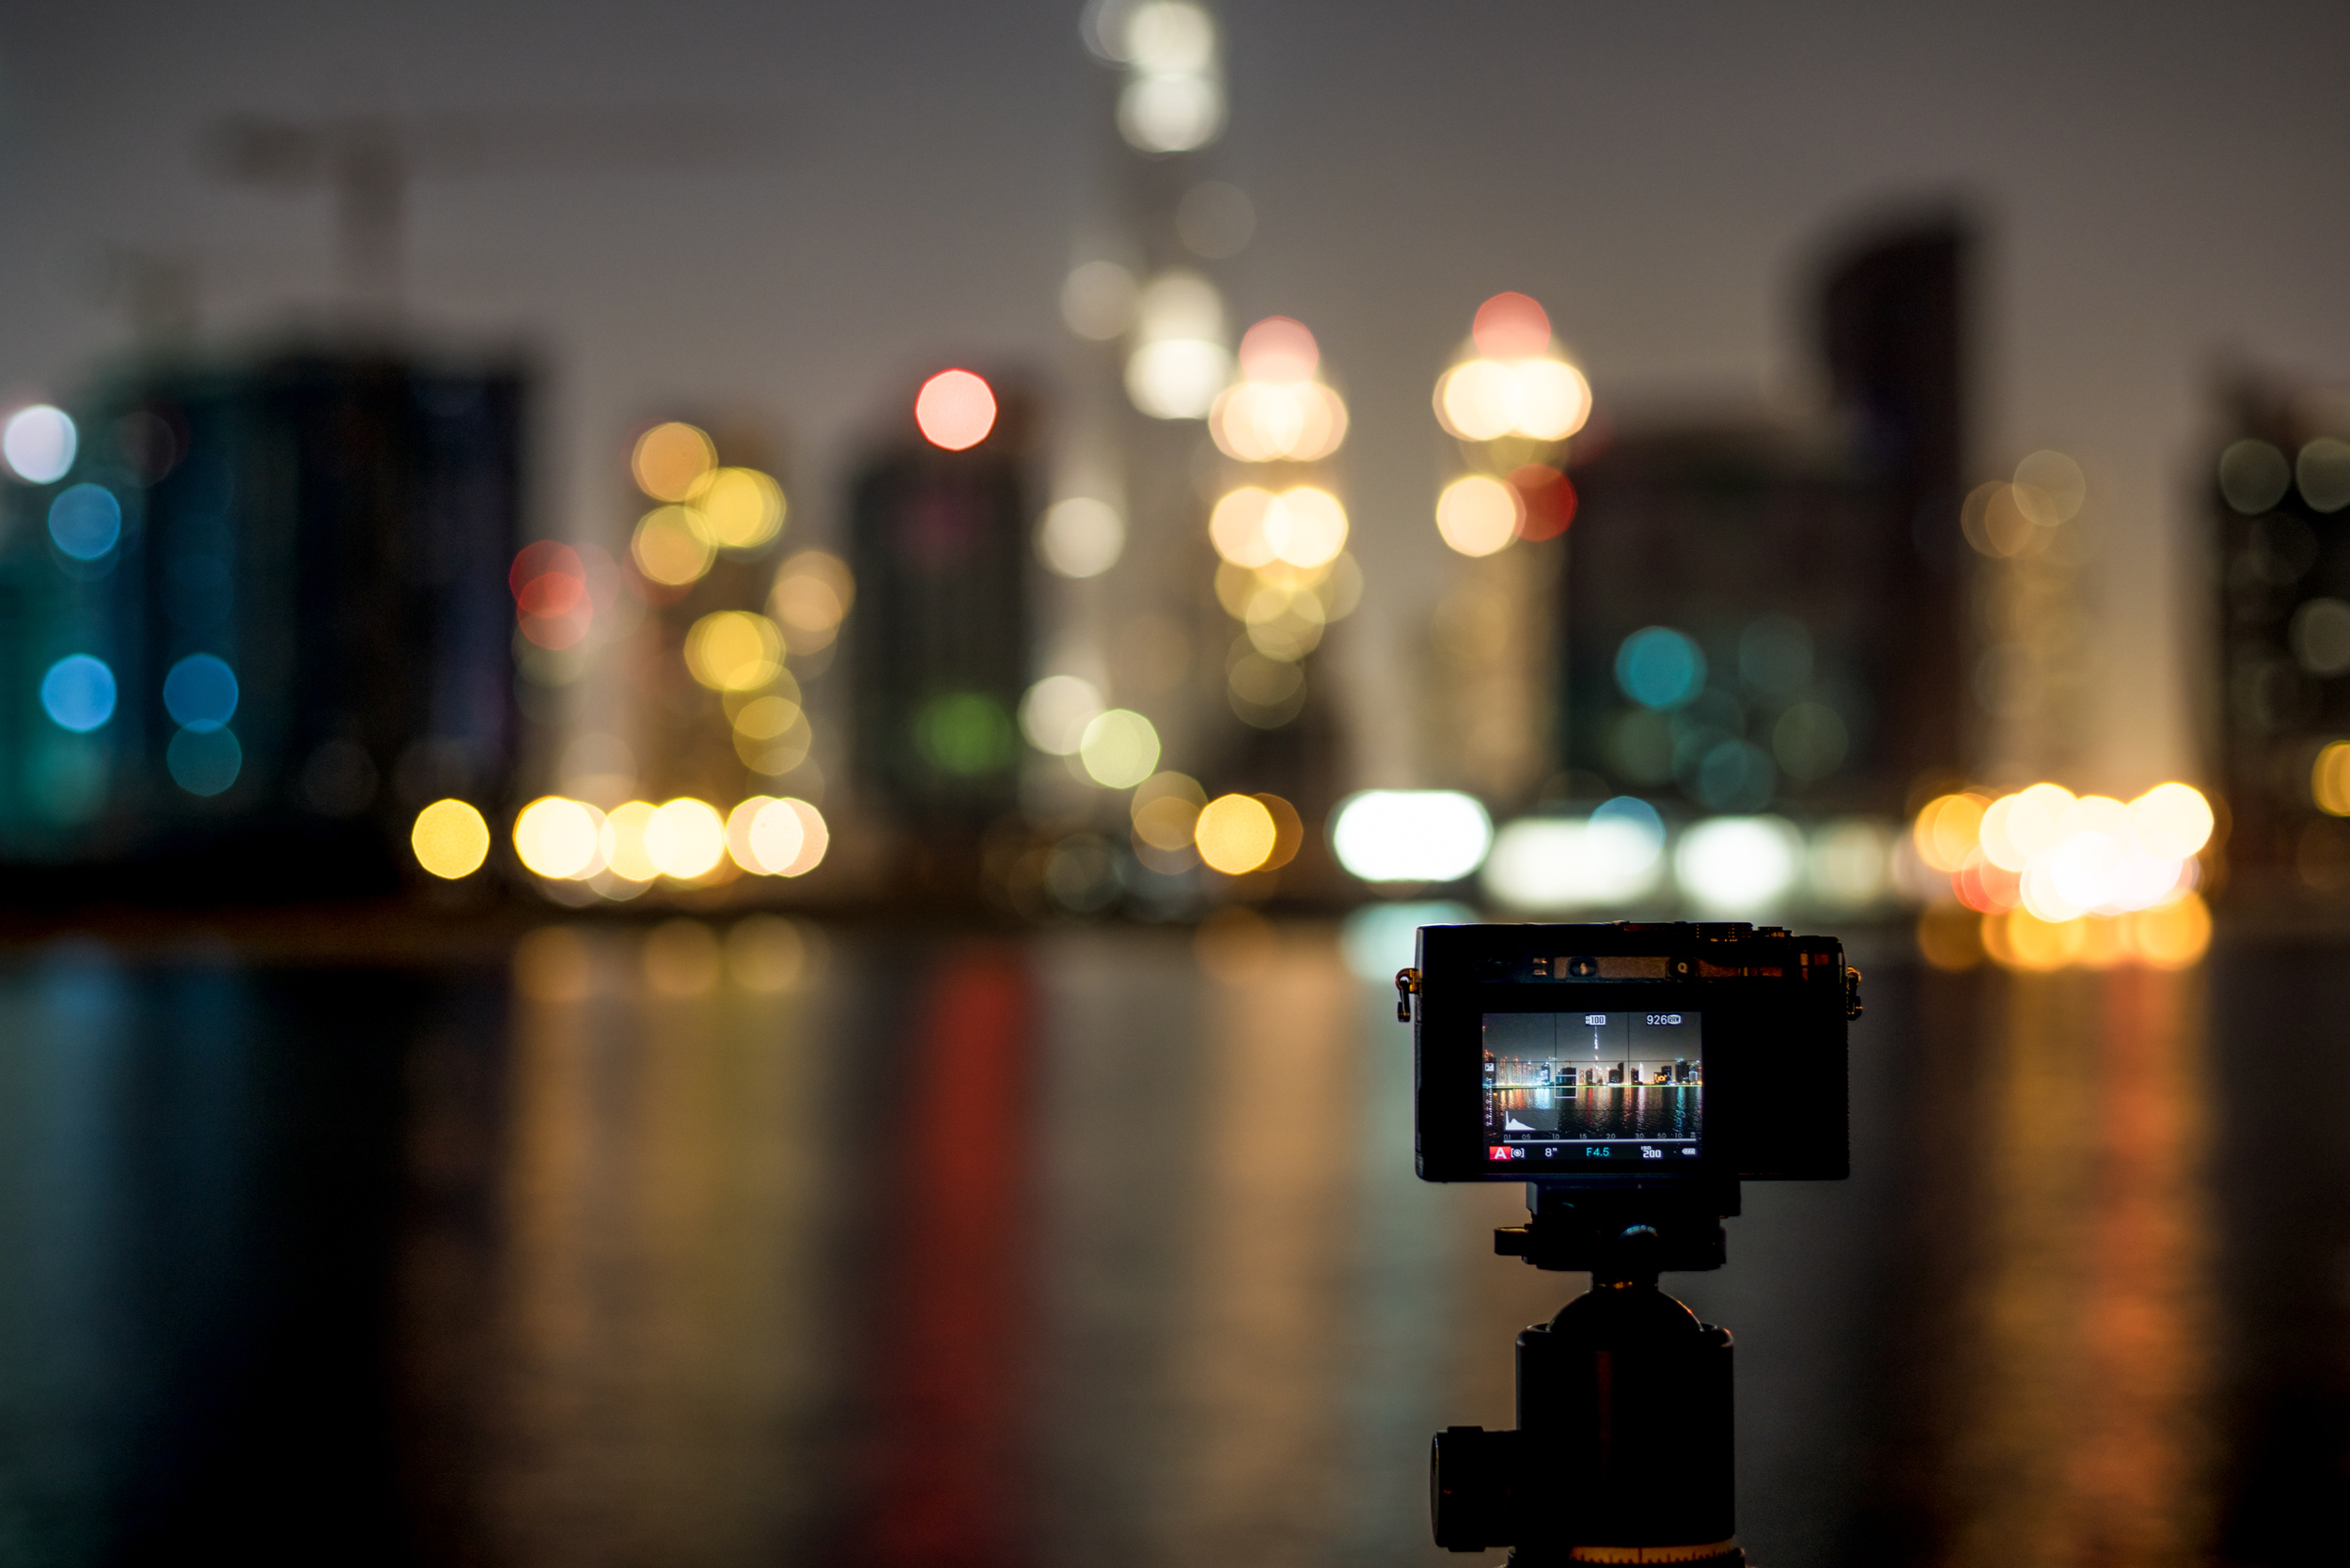 X-E2 shooting Business Bay in Dubai. (shot with Sony A7r, Canon FD 50/1.4 (Click to enlarge)